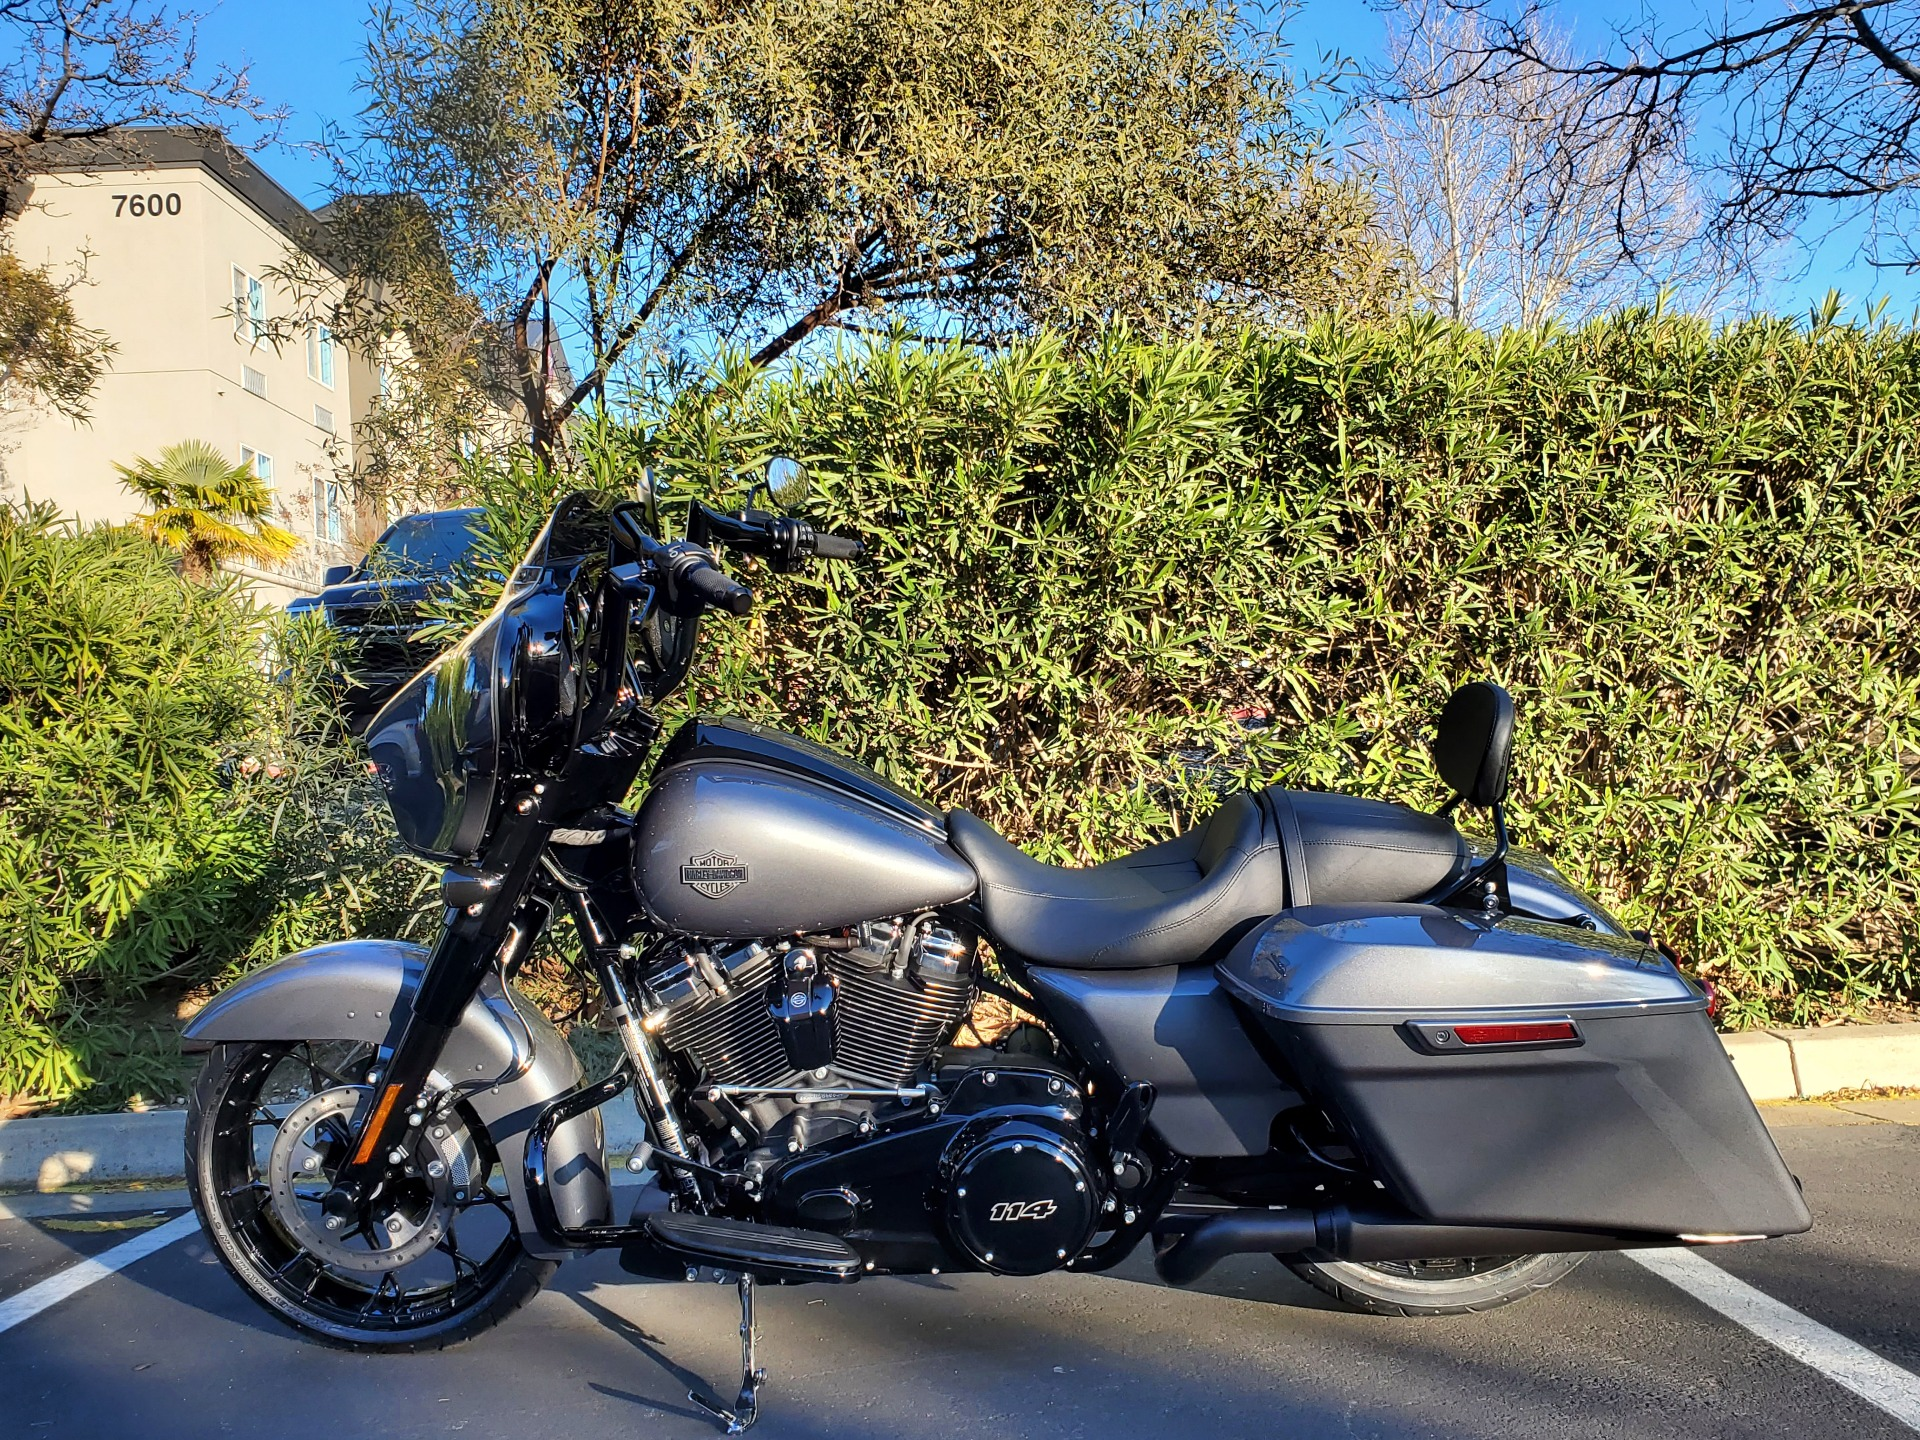 2021 Harley-Davidson Street Glide® Special in Livermore, California - Photo 1